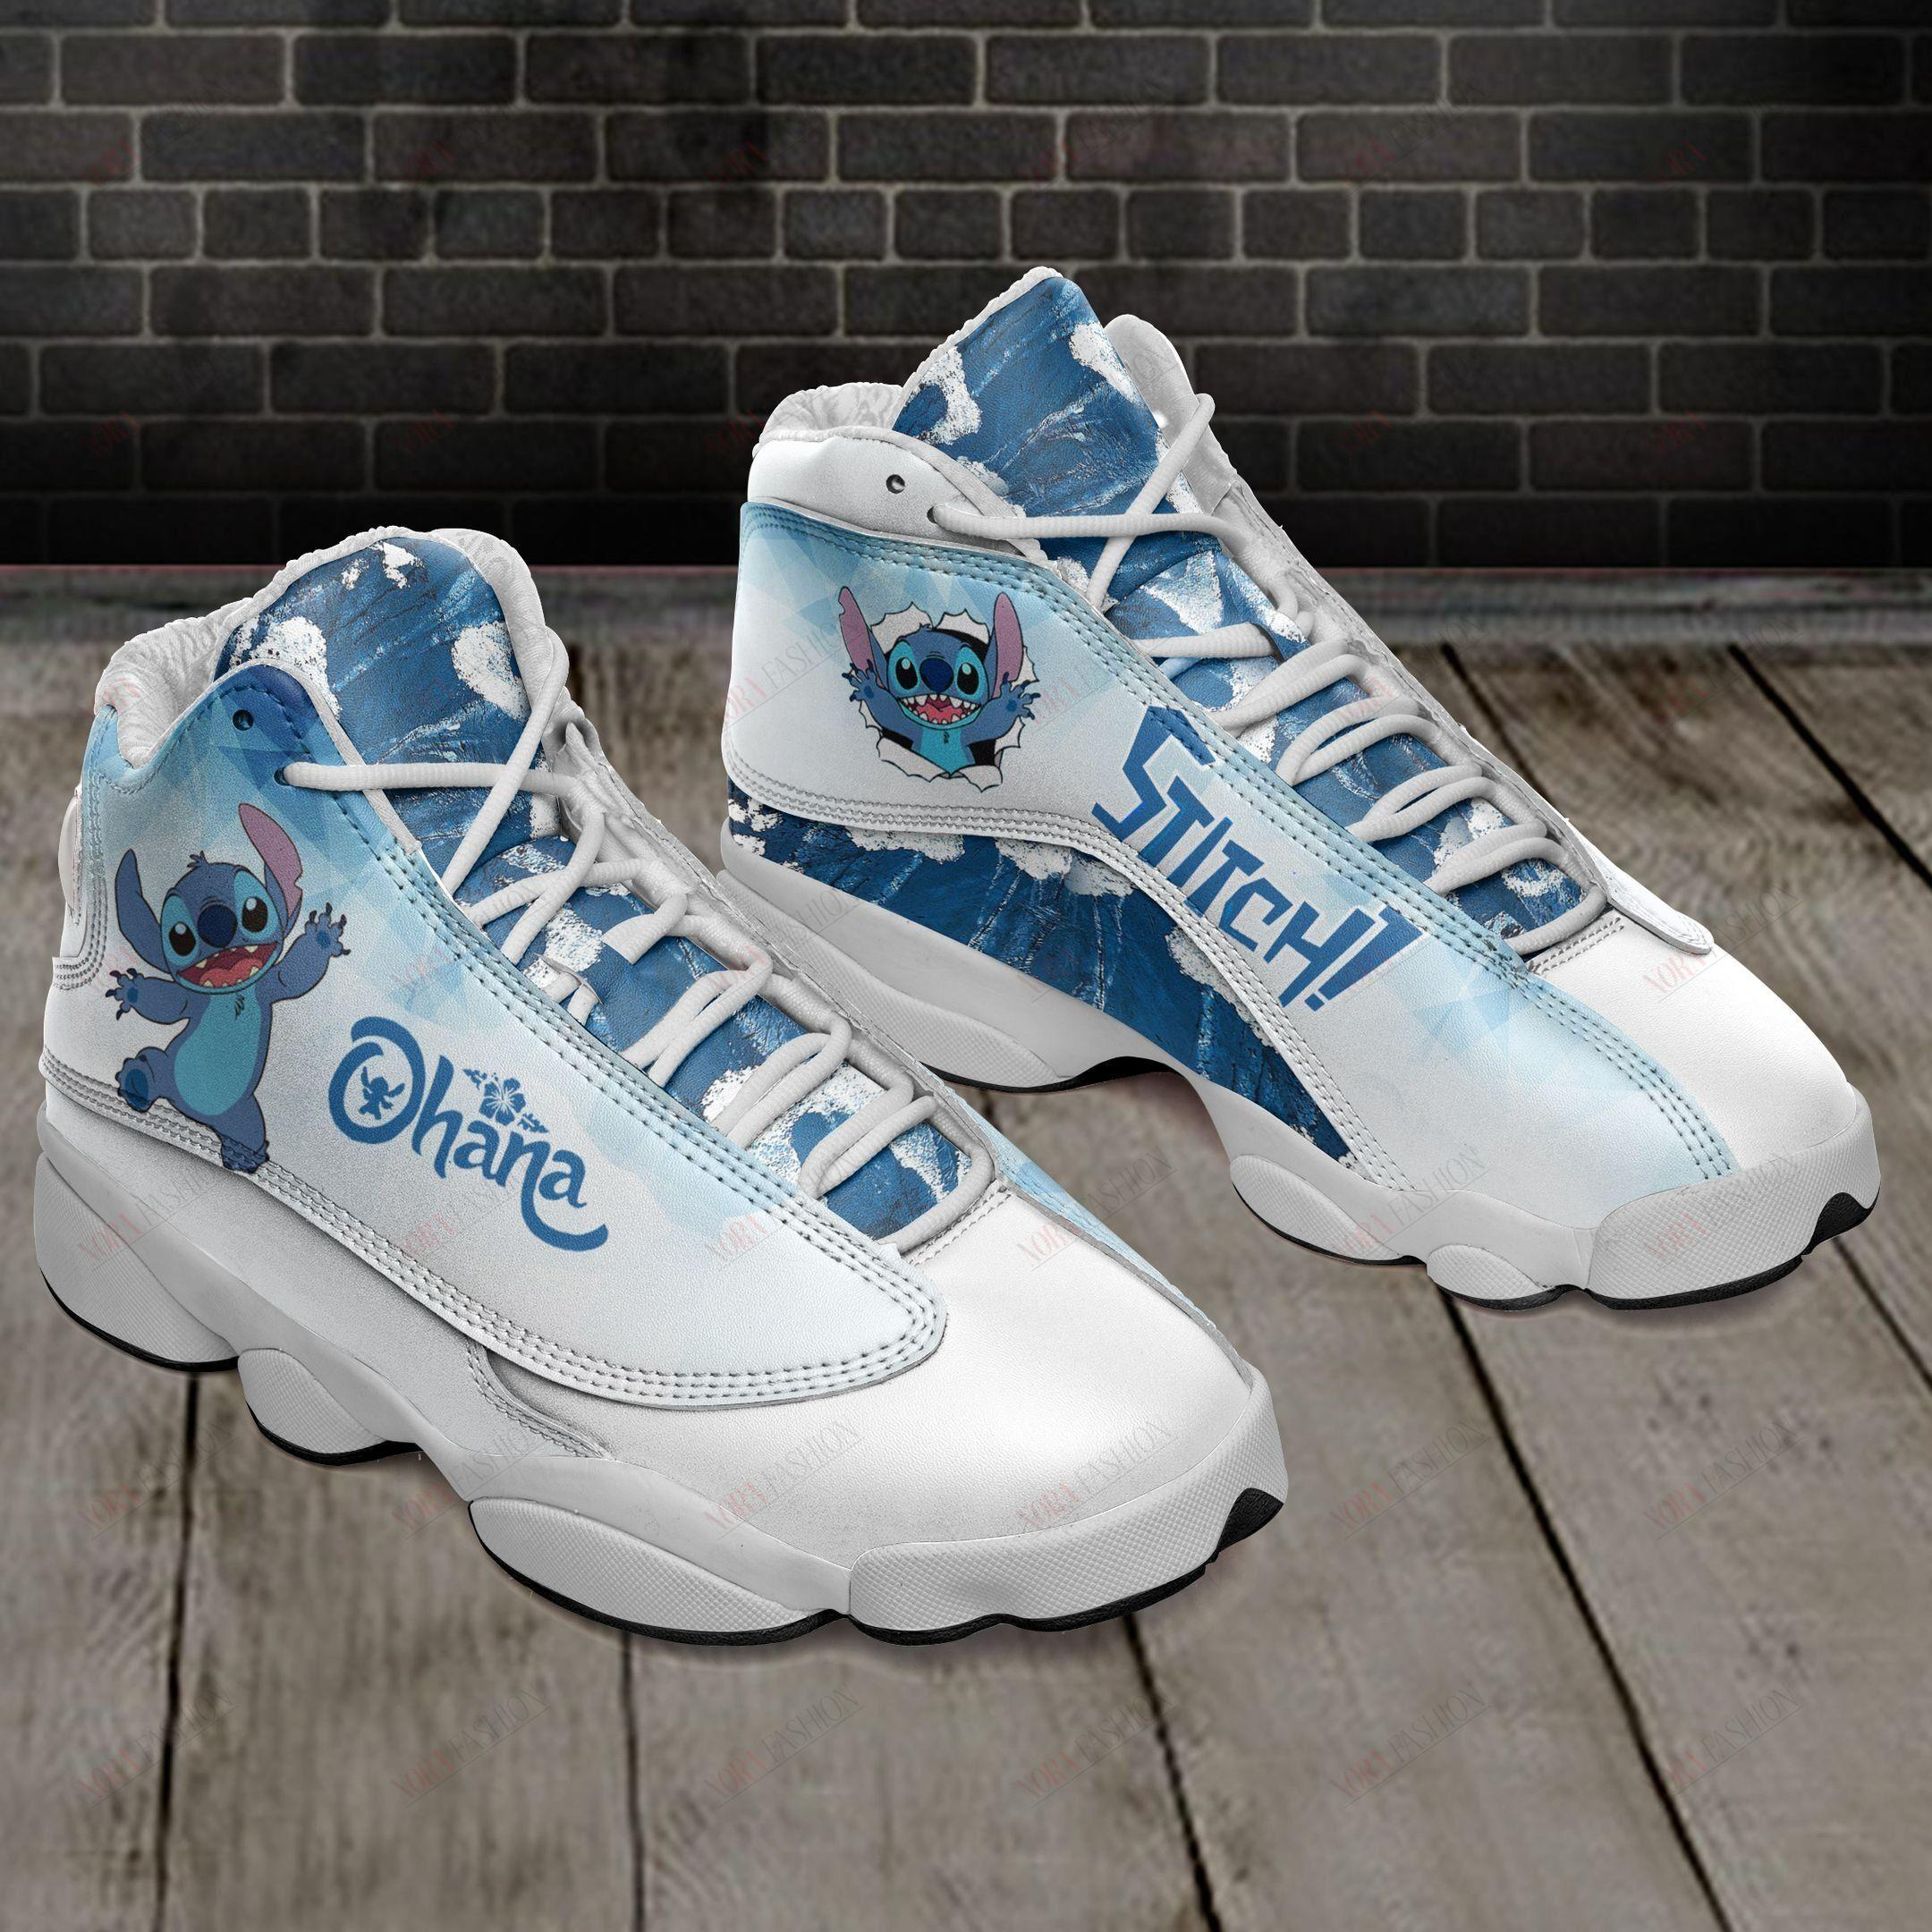 Stitch Ohana Air Jordan 13 Sneakers Sport Shoes